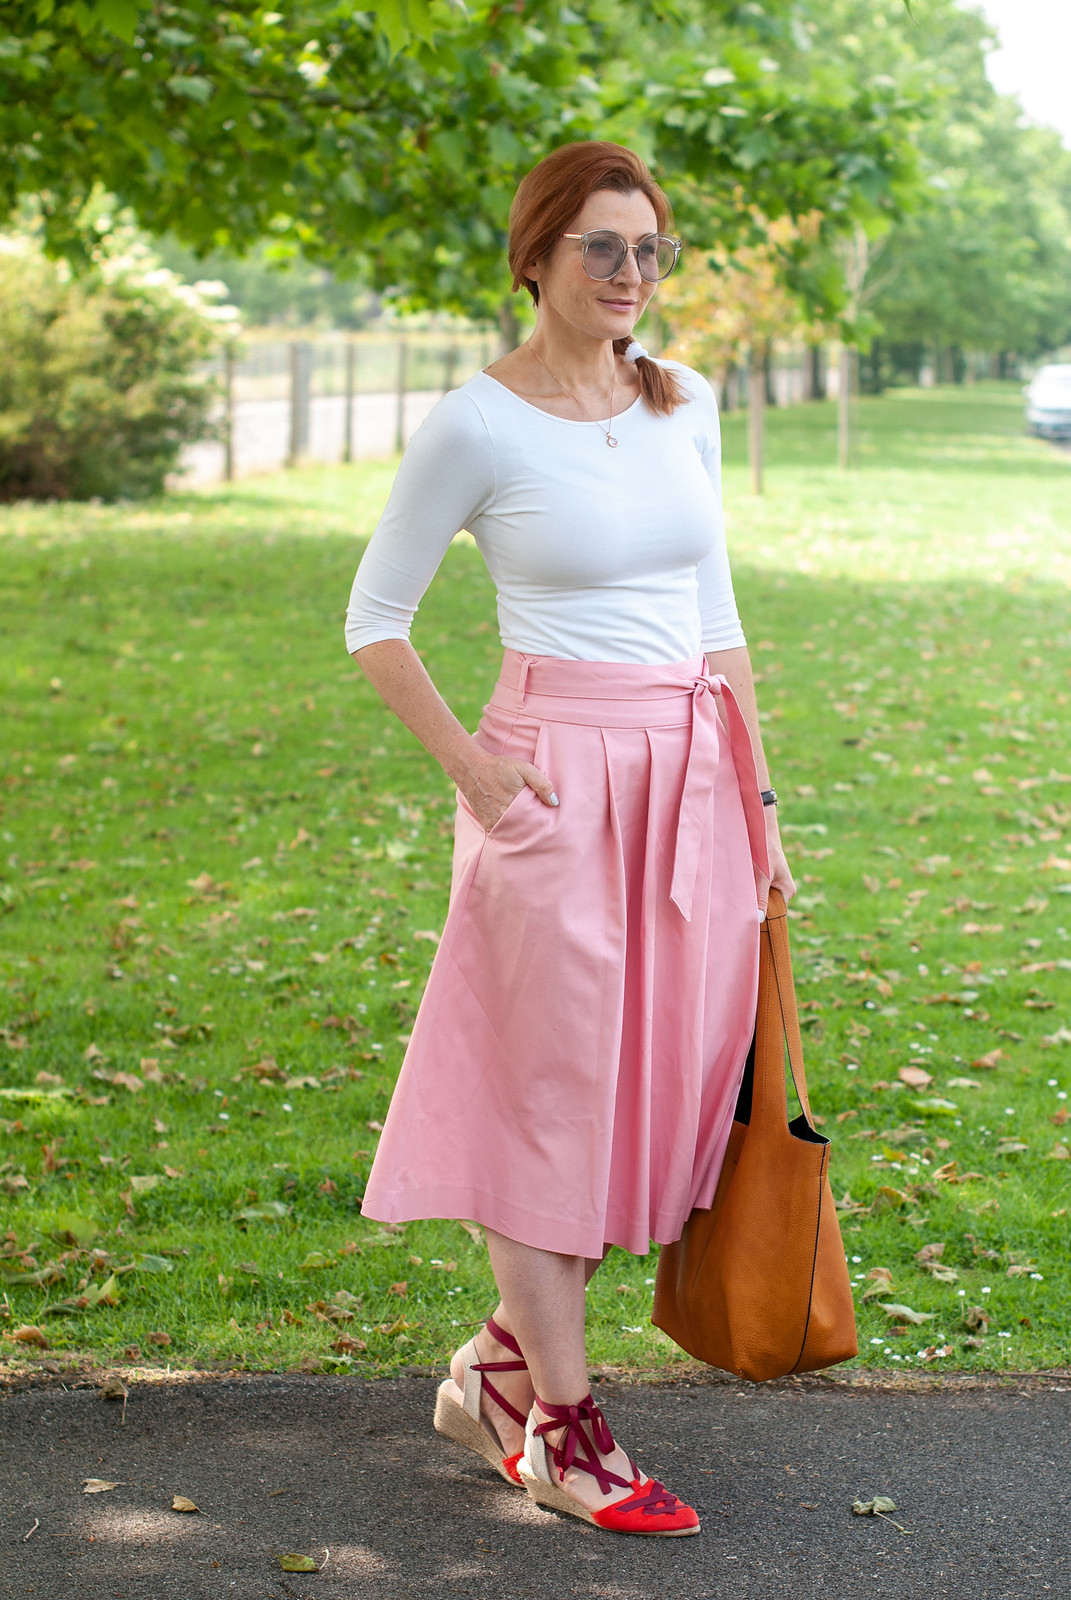 Simple summer weekend outfit: a t-shirt and flared midi skirt with espadrilles | Not Dressed As Lamb, over 40 style